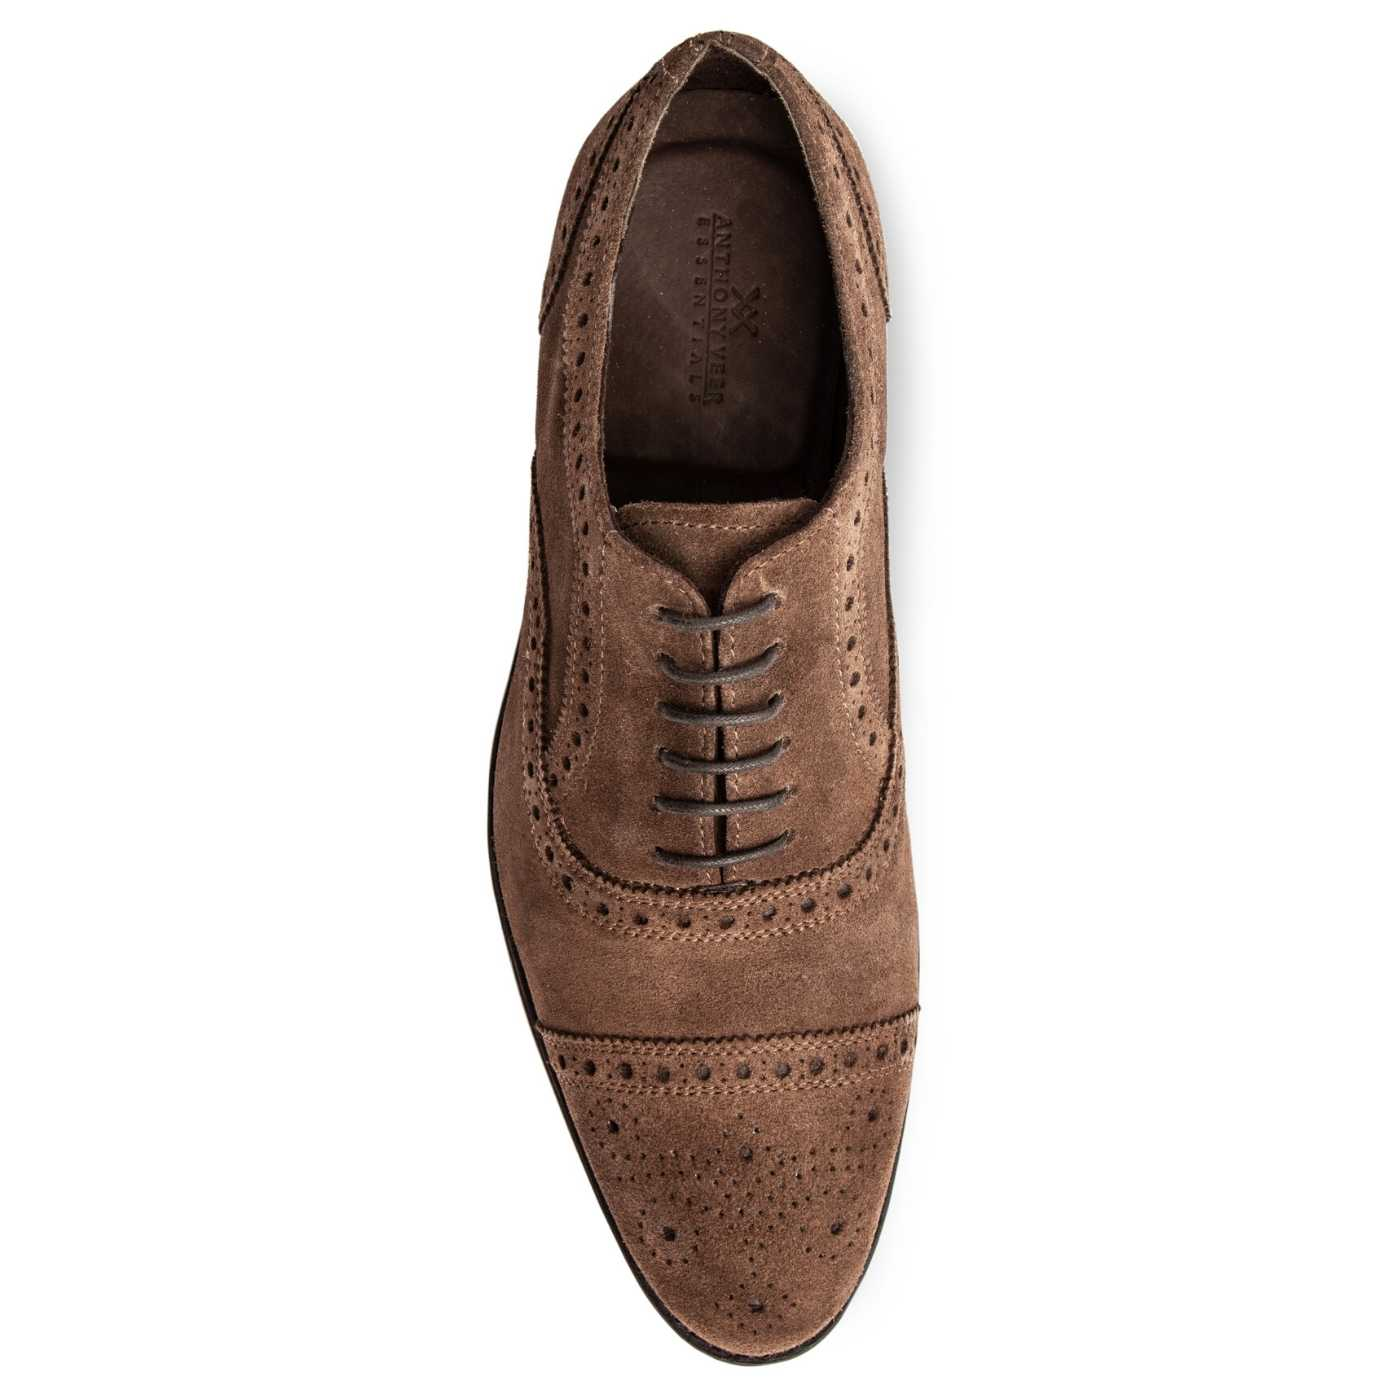 Ford Quarter Brogue Oxford Suede